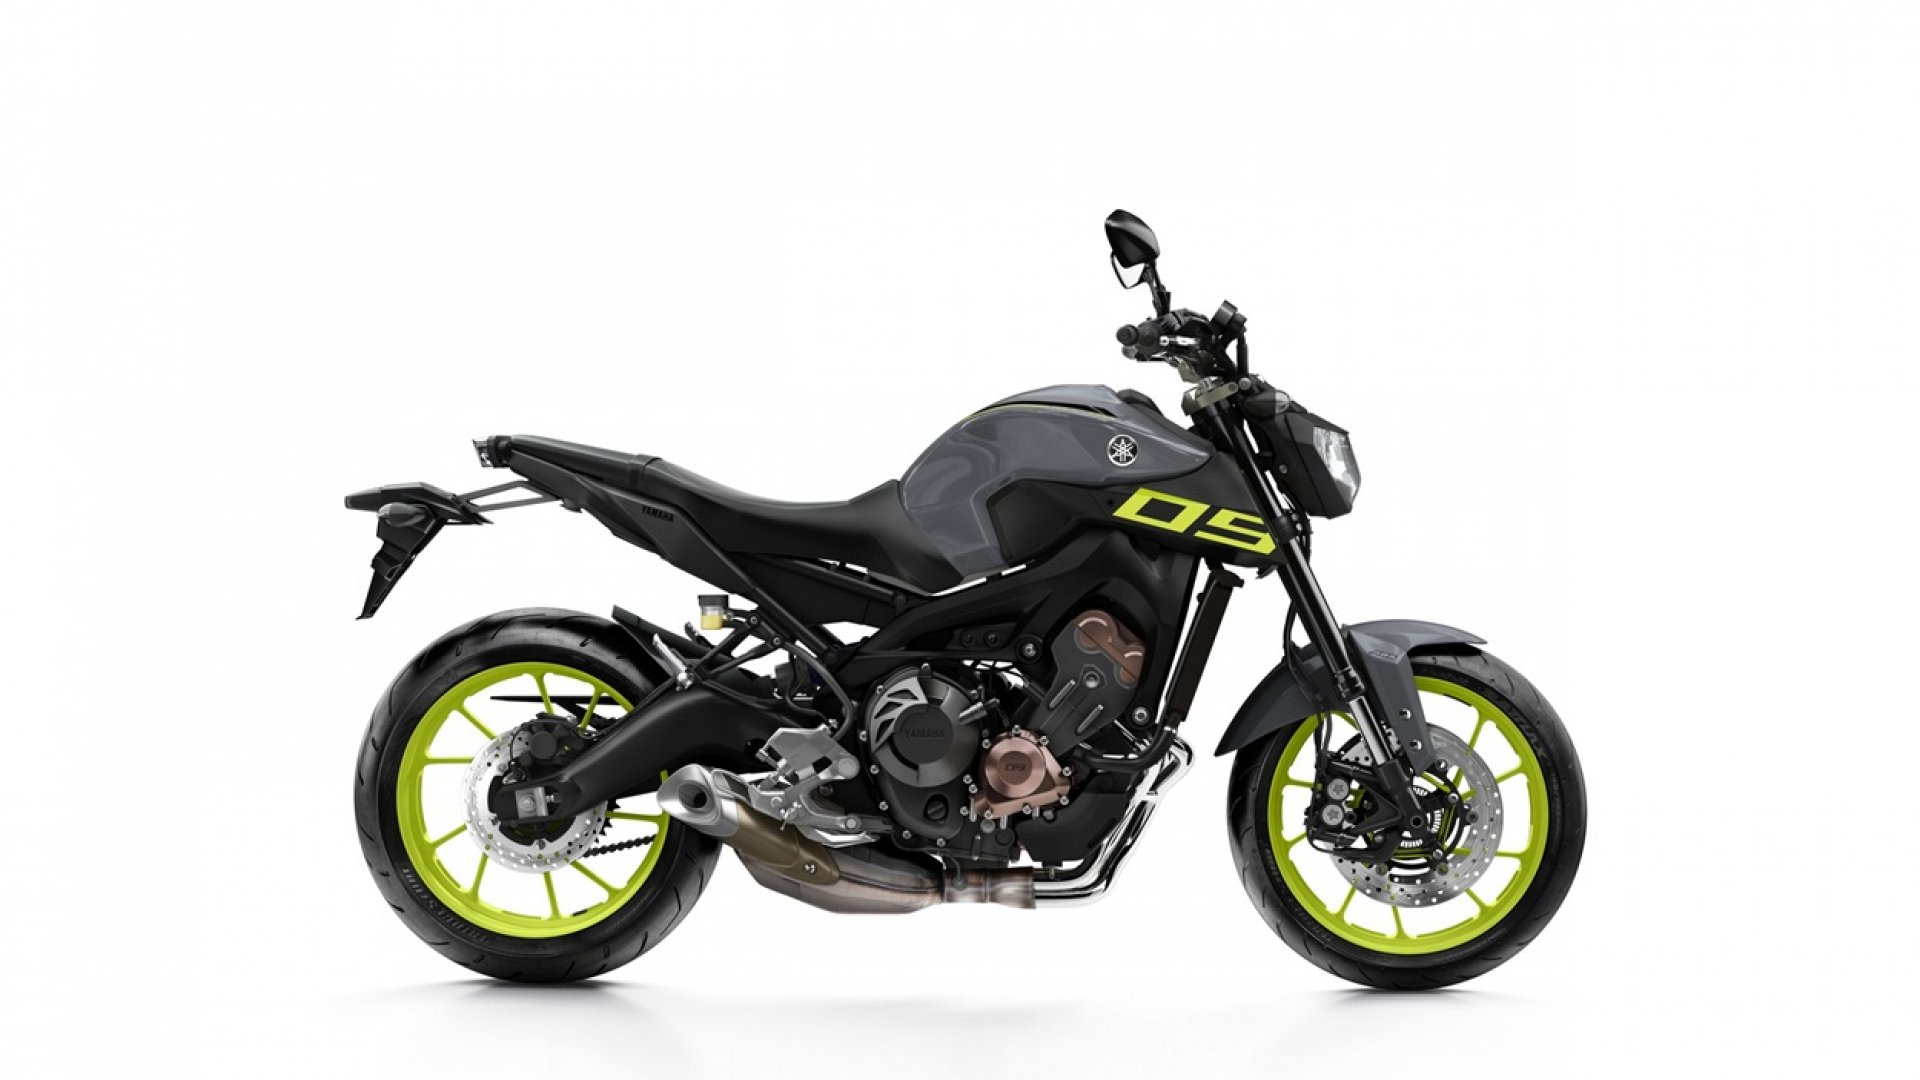 new 2016 yamaha mt 09 abs for sale finance available